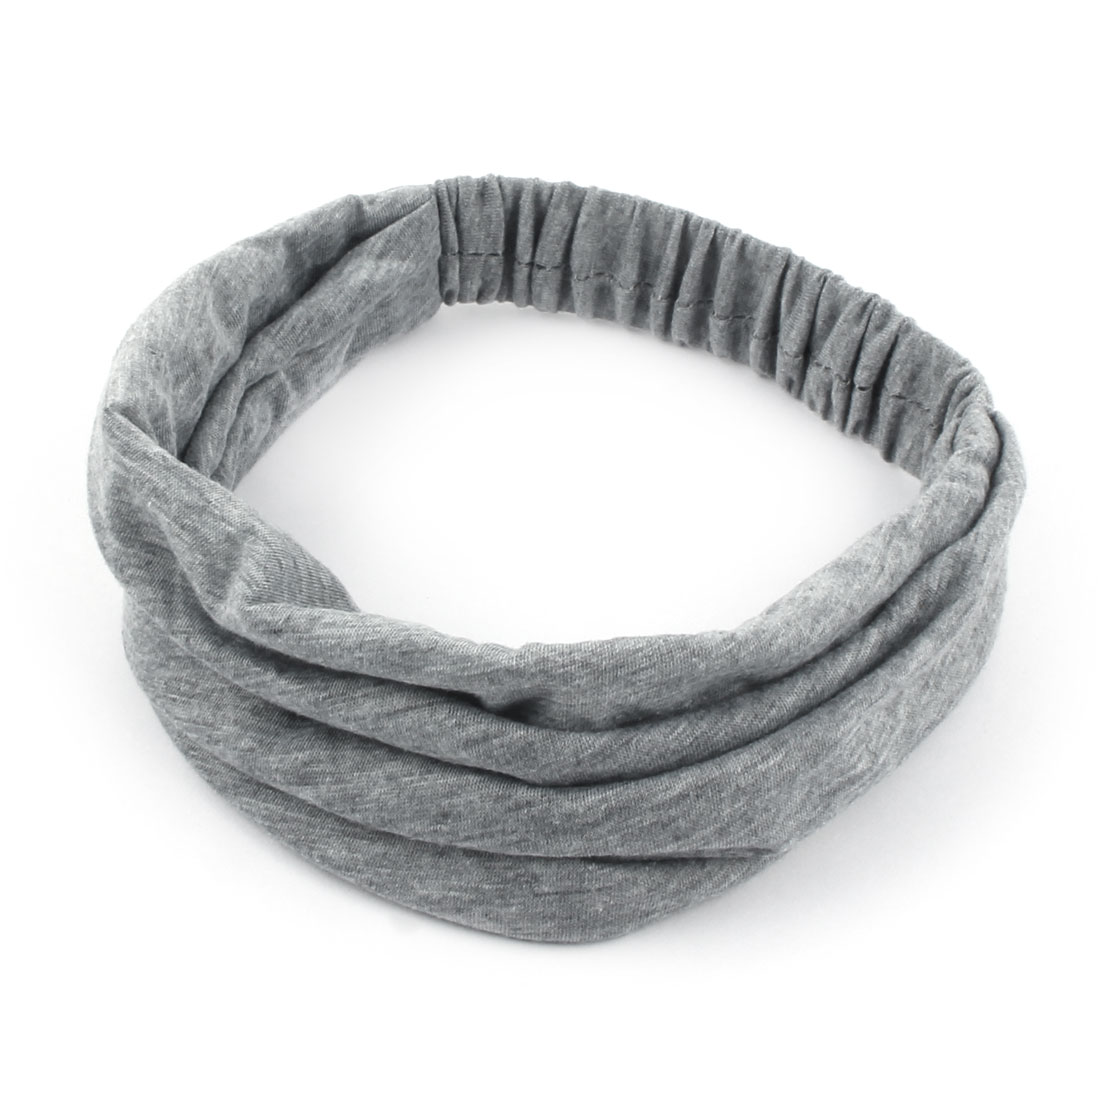 Outdoor Running Sports Cotton Blends Elastic Headwraps Headband Hair Band Gray - image 3 de 5